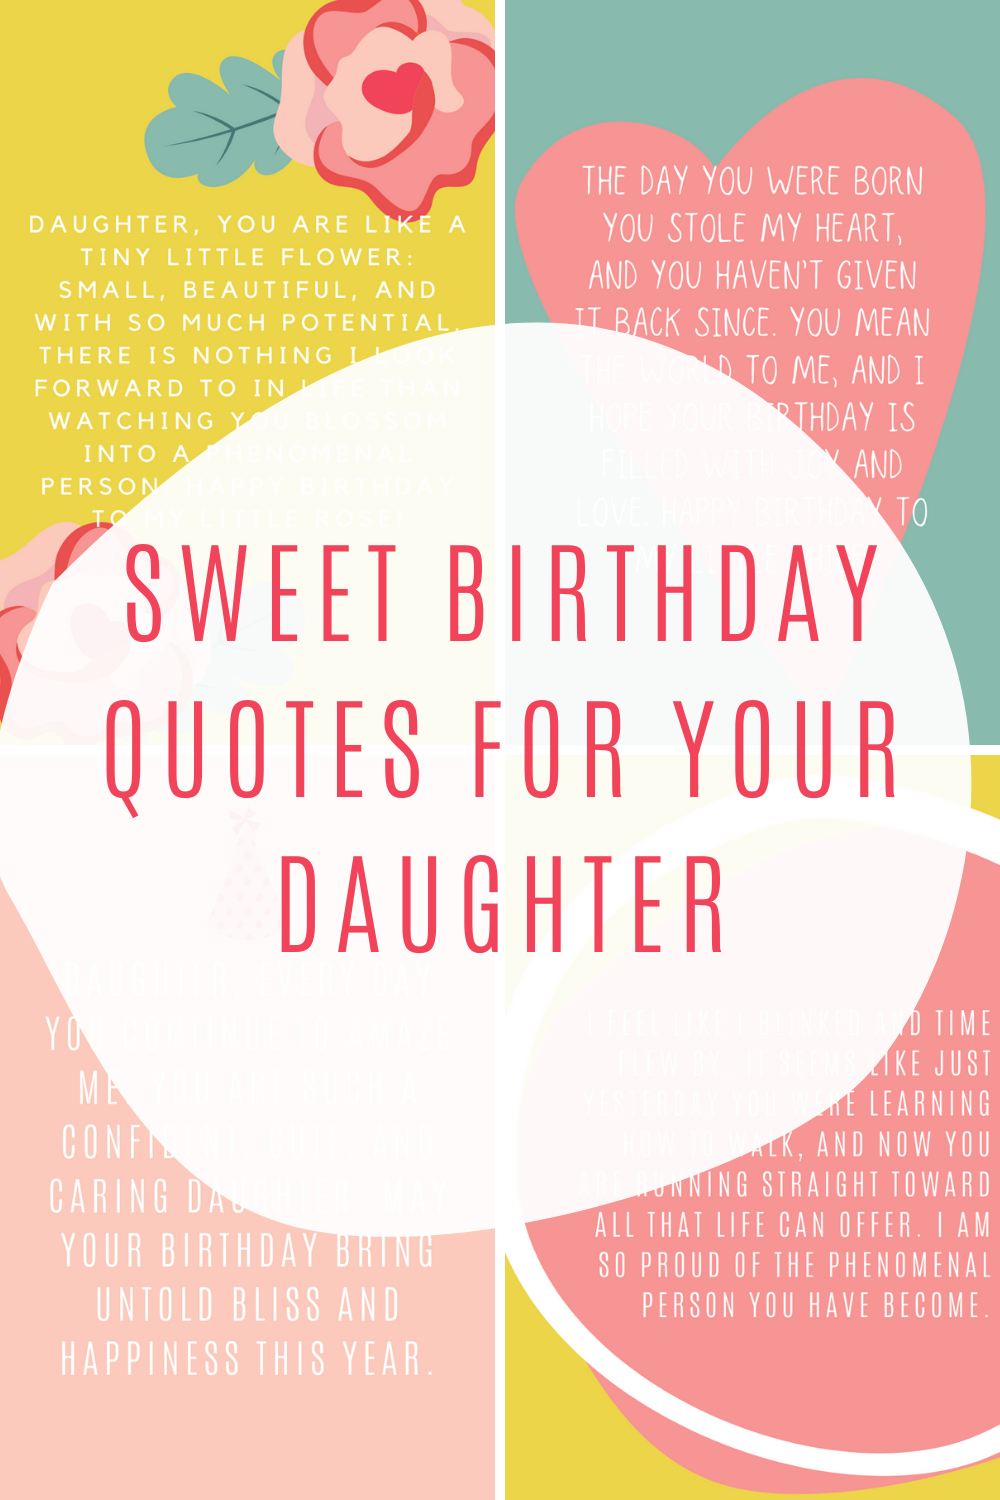 sweet birthday quotes for your daughter